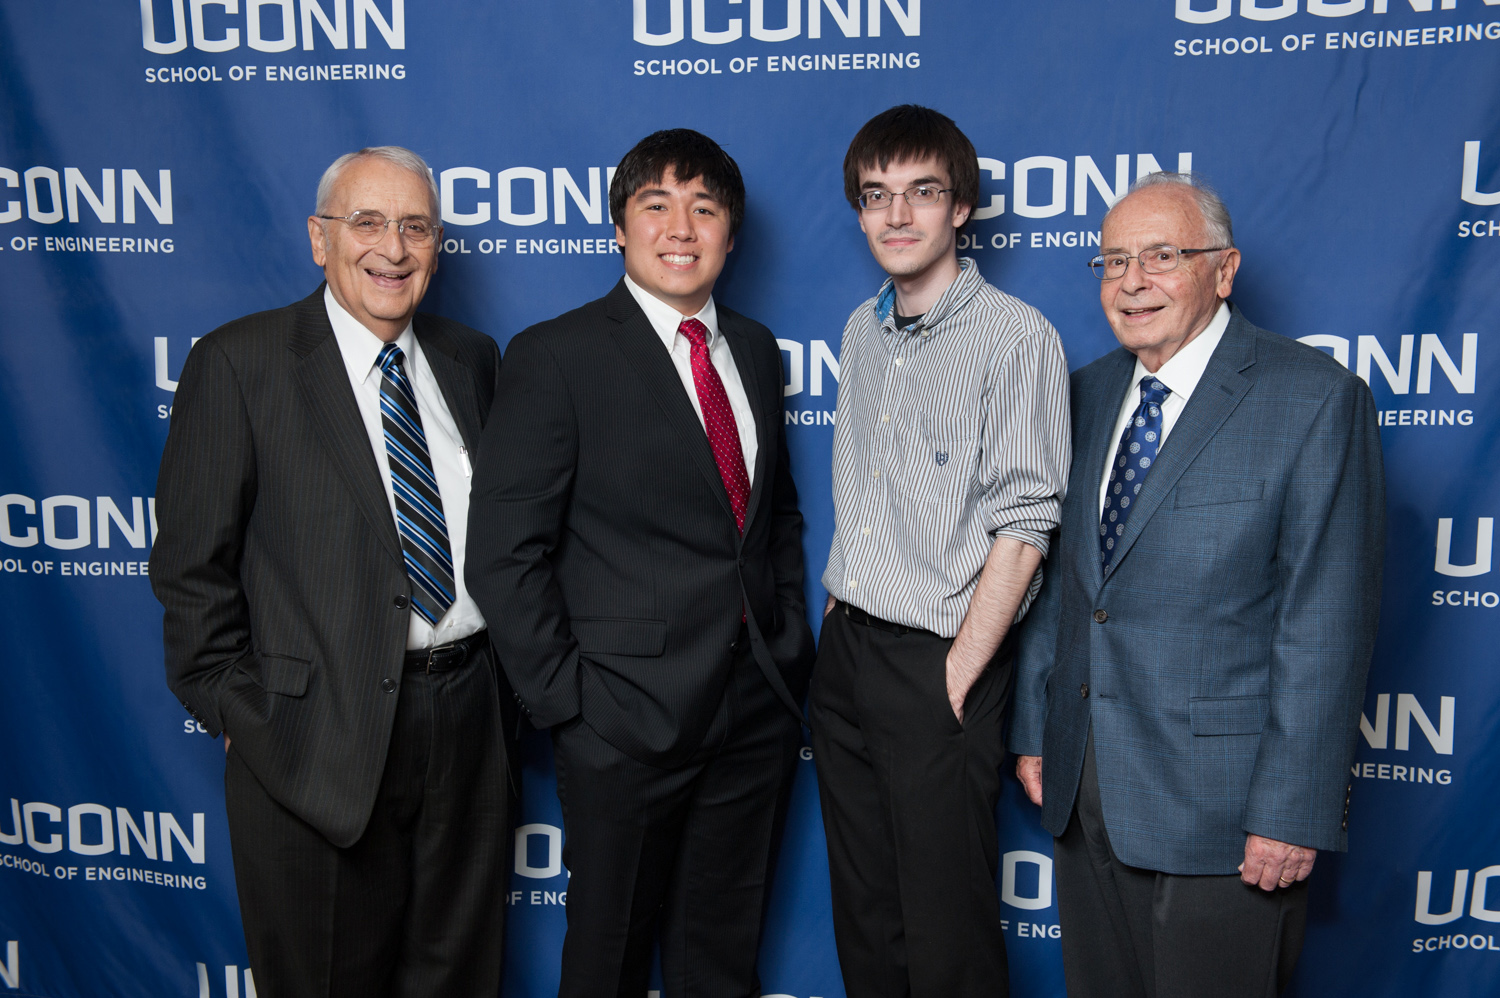 Stephen Altschuler (far left) and Sam Altschuler (far right) stand with their undergraduate scholarship recipients at a ceremony in 2015. (Christopher Larosa/UConn Photo)